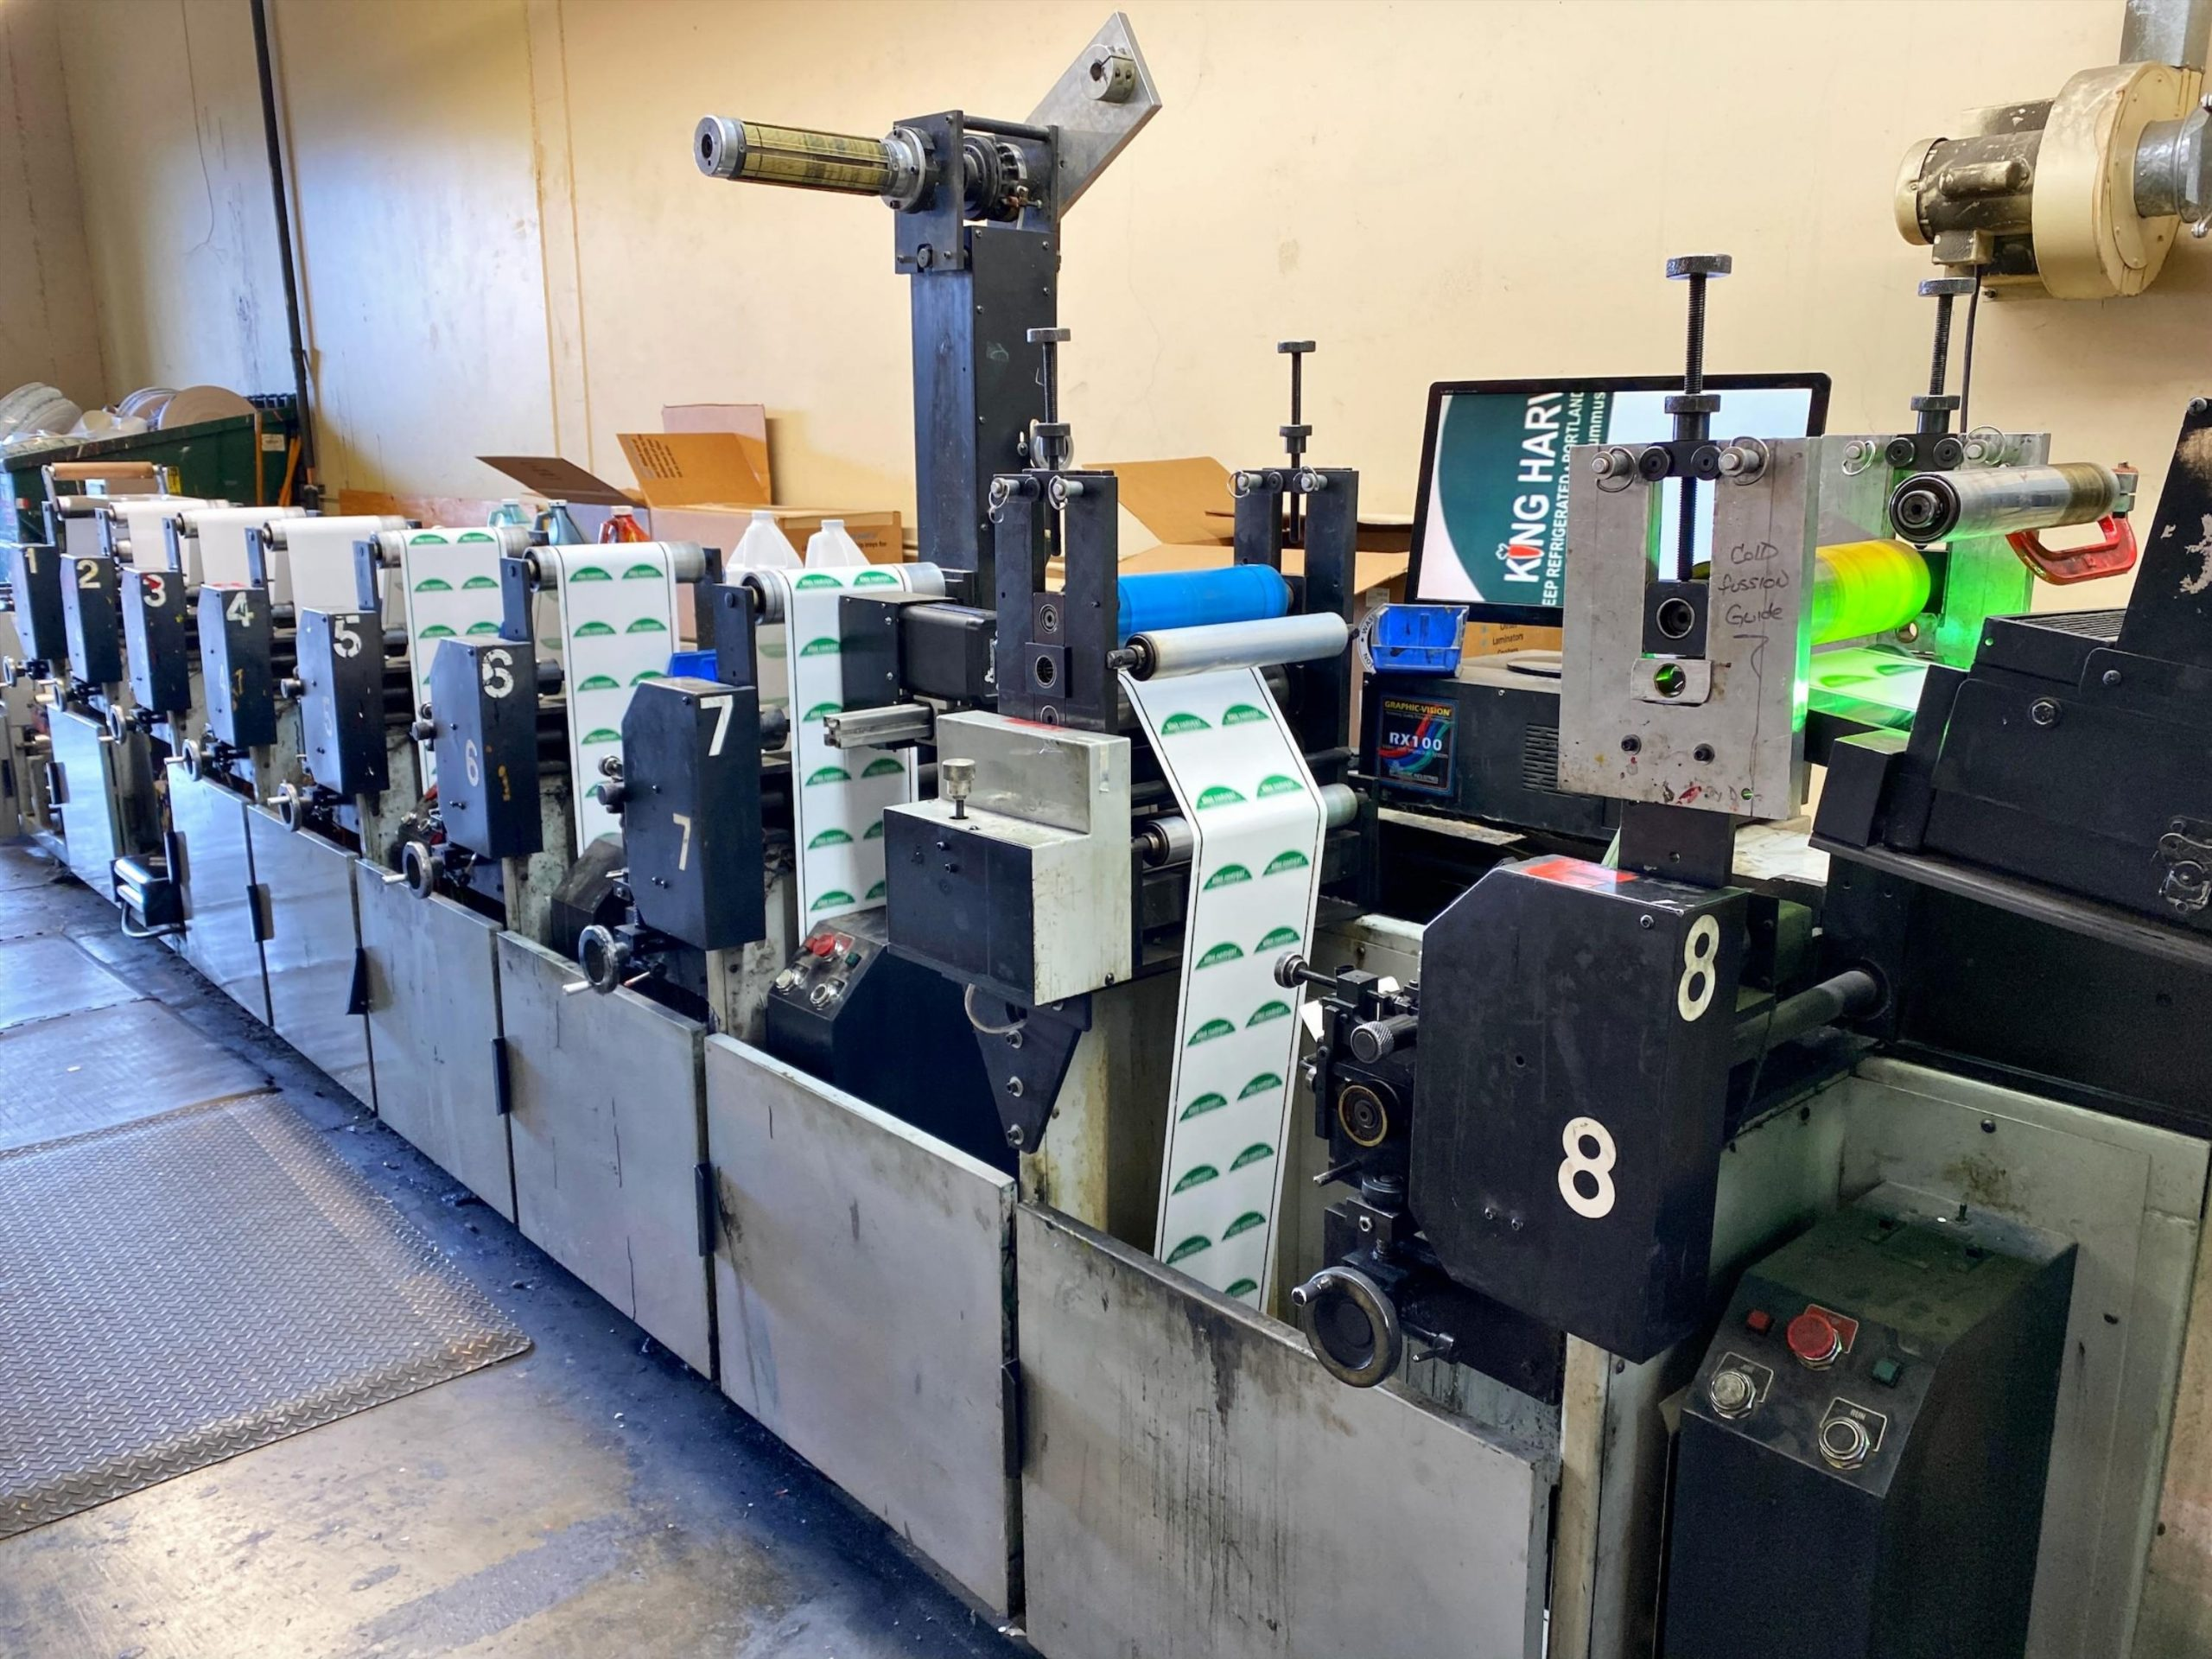 Propheteer 1000 - Used Flexo Printing Presses and Used Flexographic Equipment-10